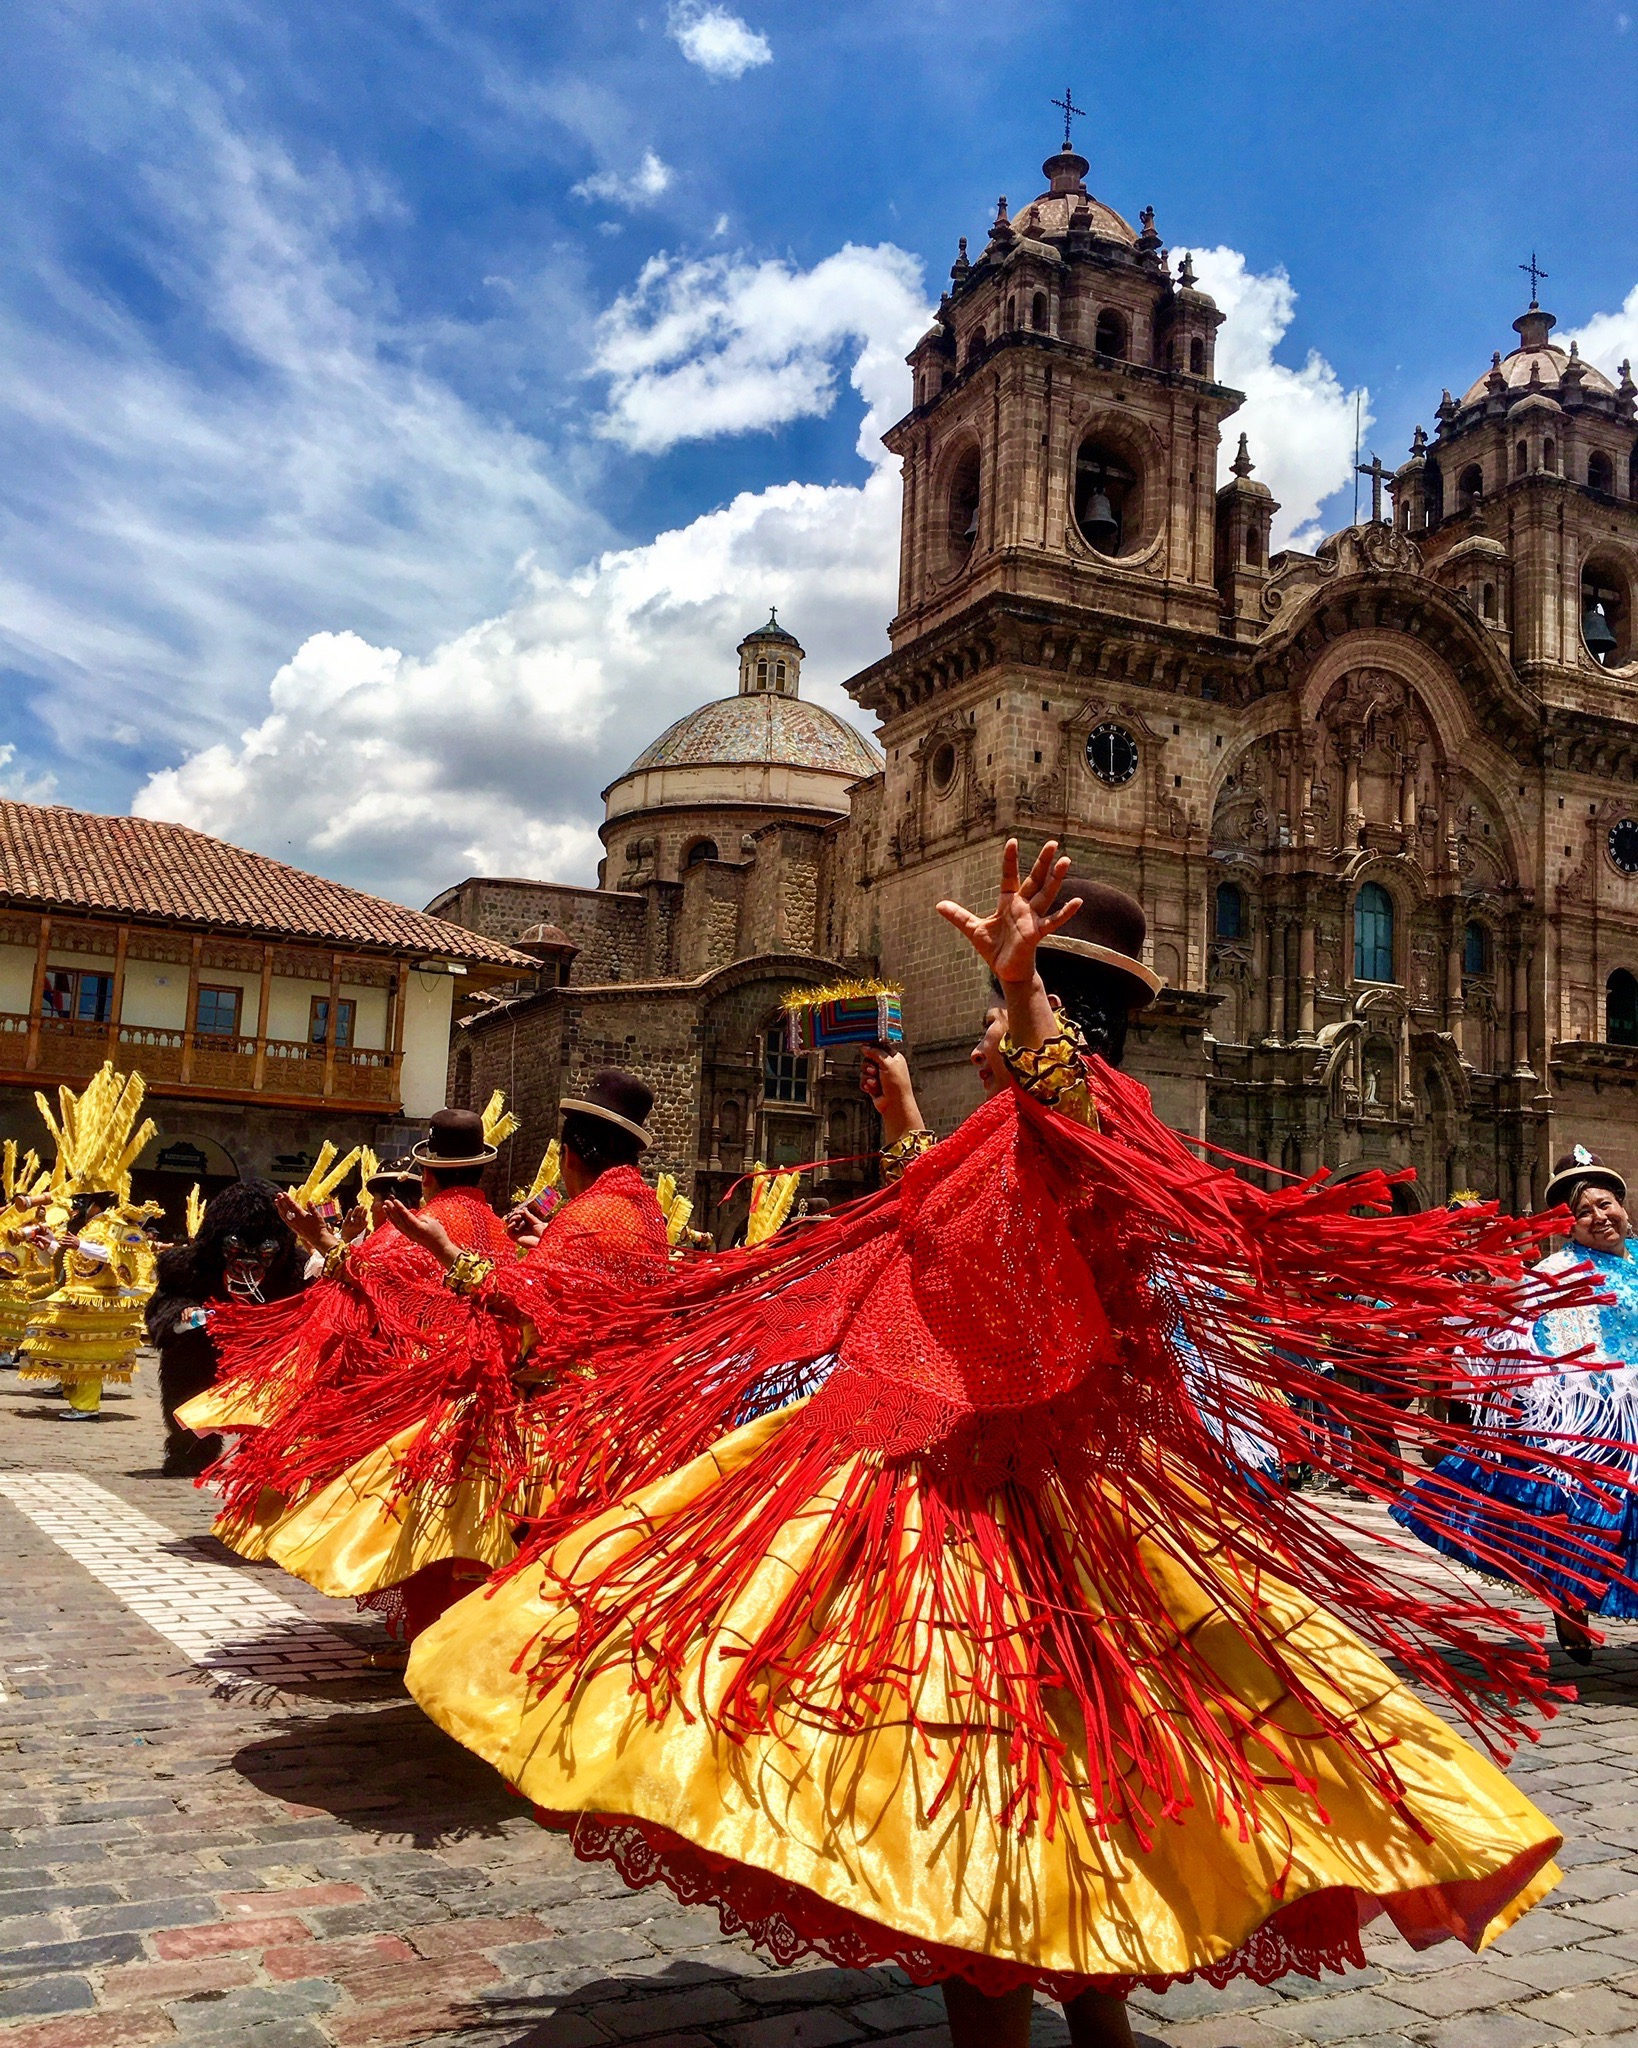 Dancers in the Plaza de Armas, Cusco Peru